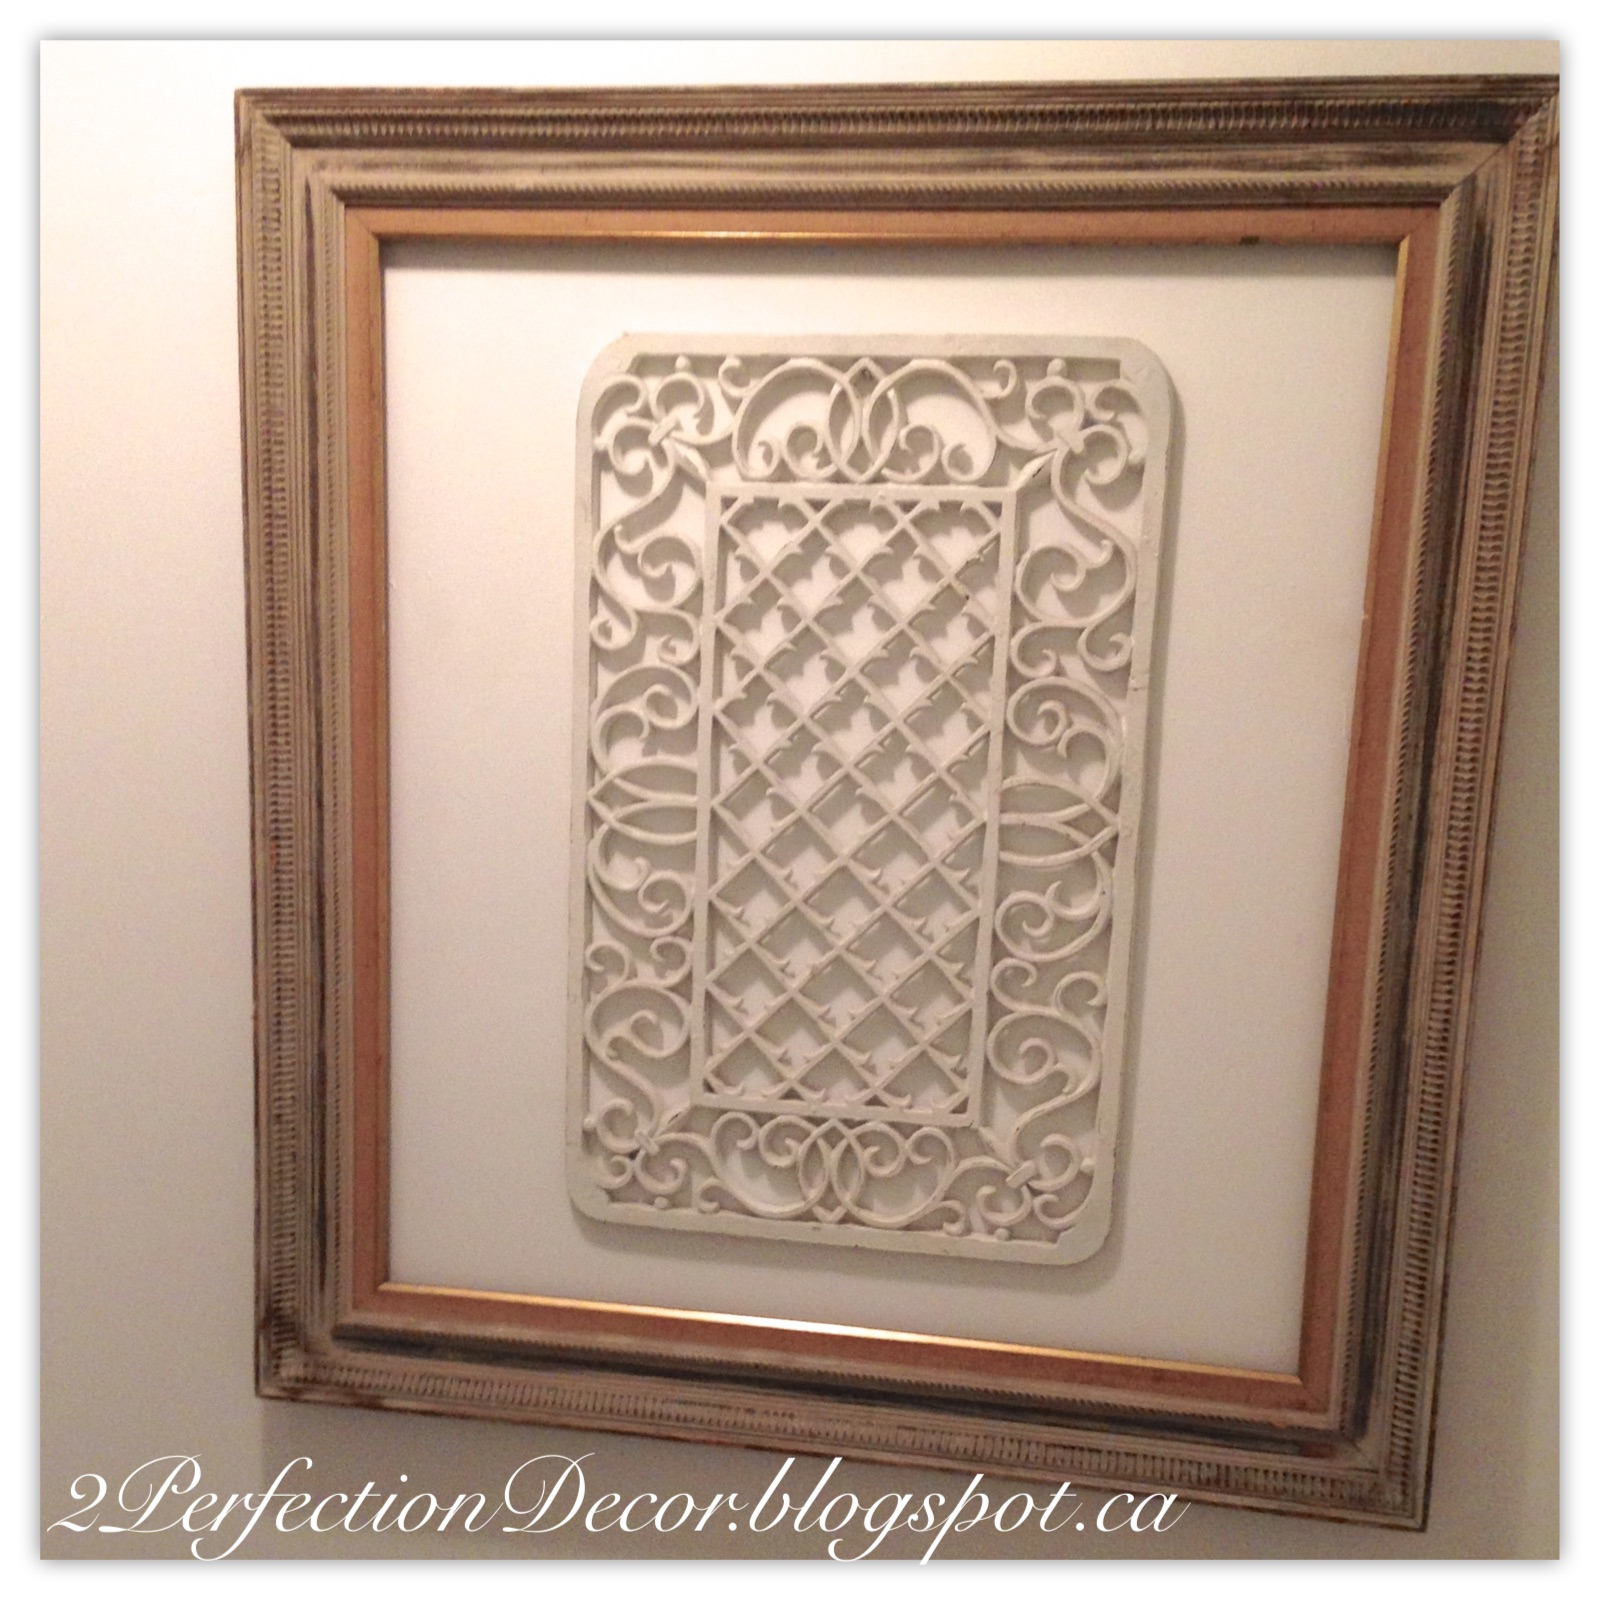 Luxury  make the wall piece ugrand er u Adding a simple frame around metal ornate grate helped fill the empty space on our Main Bathroom Wall